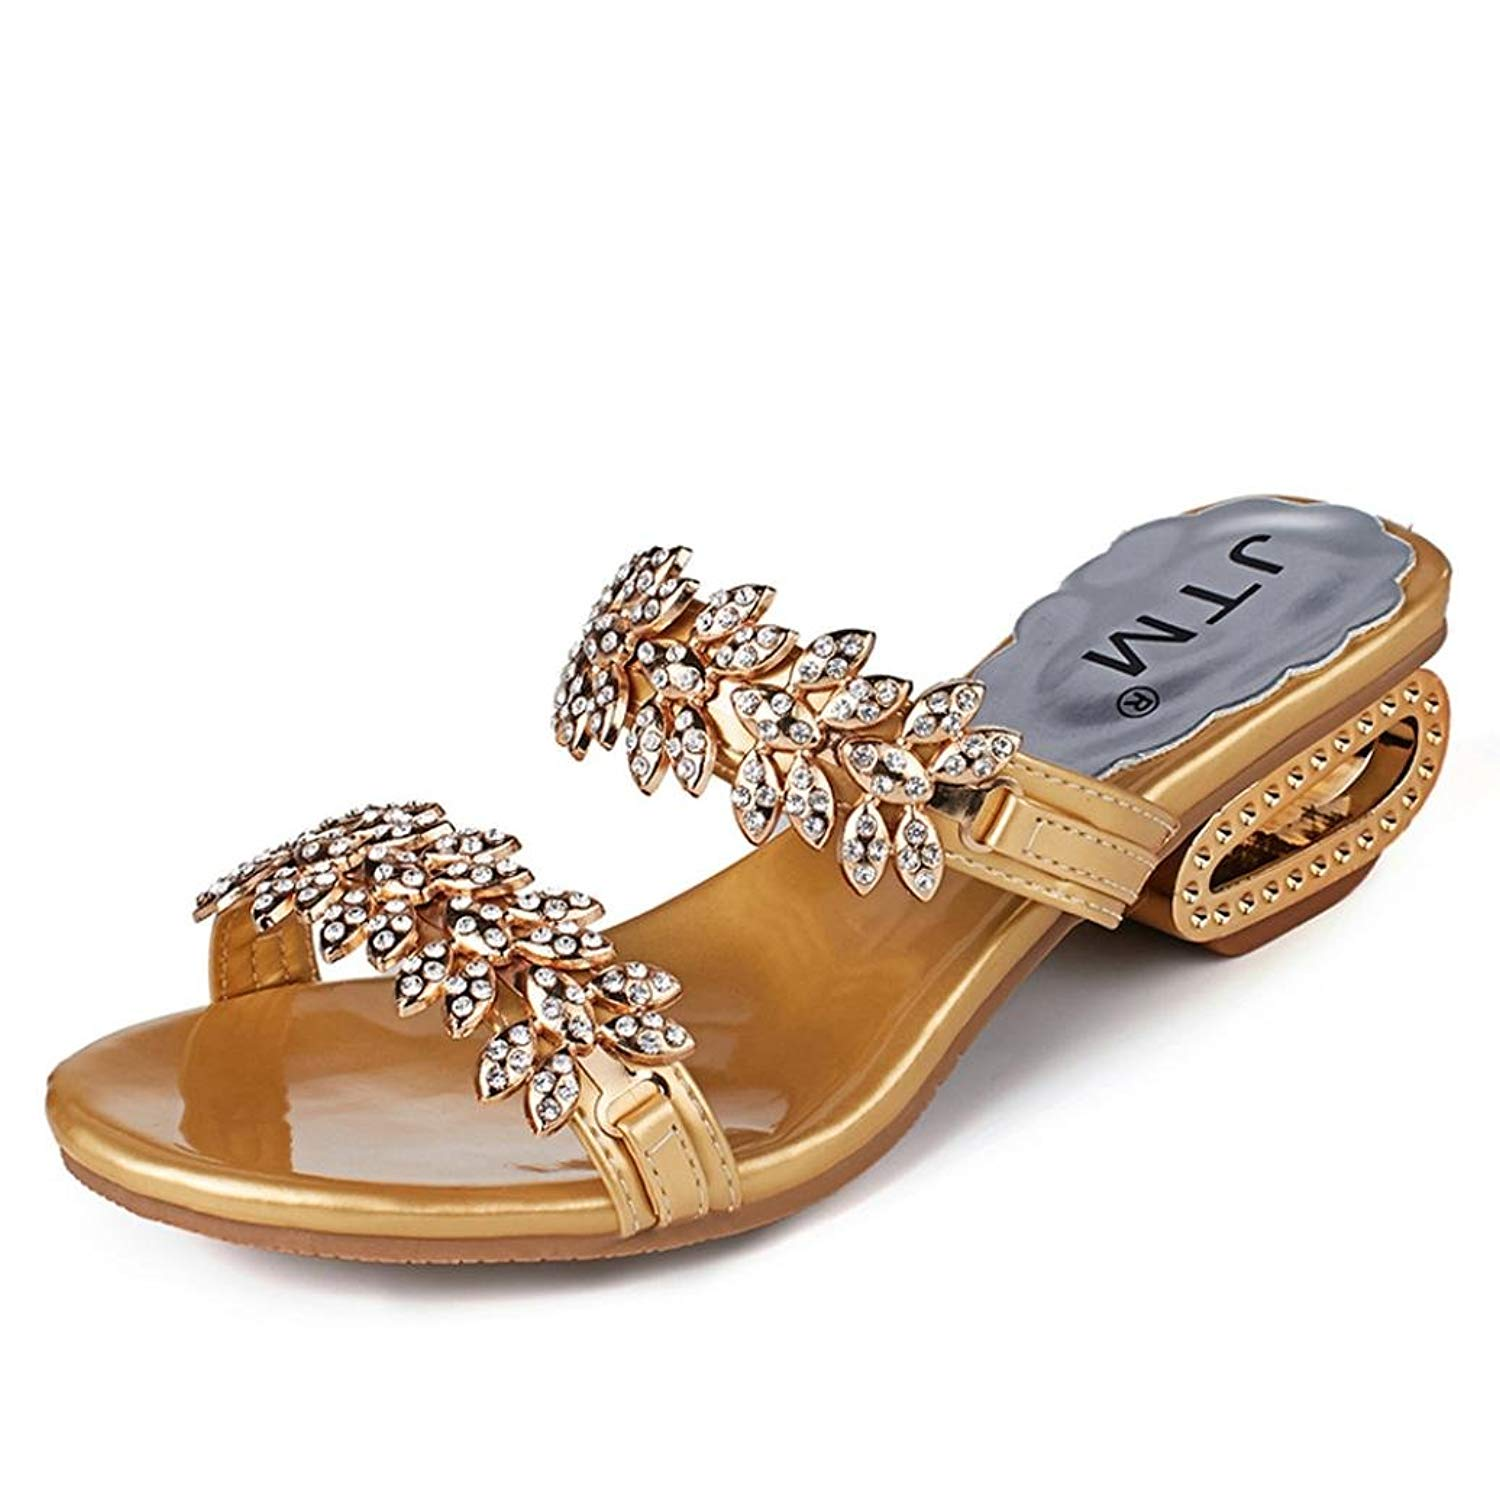 Sunbona Beach Slippers for Women,Ladies Summer Rhinestone Open Toe Flip Flops Low Heels Sandals Casual Party Shoes